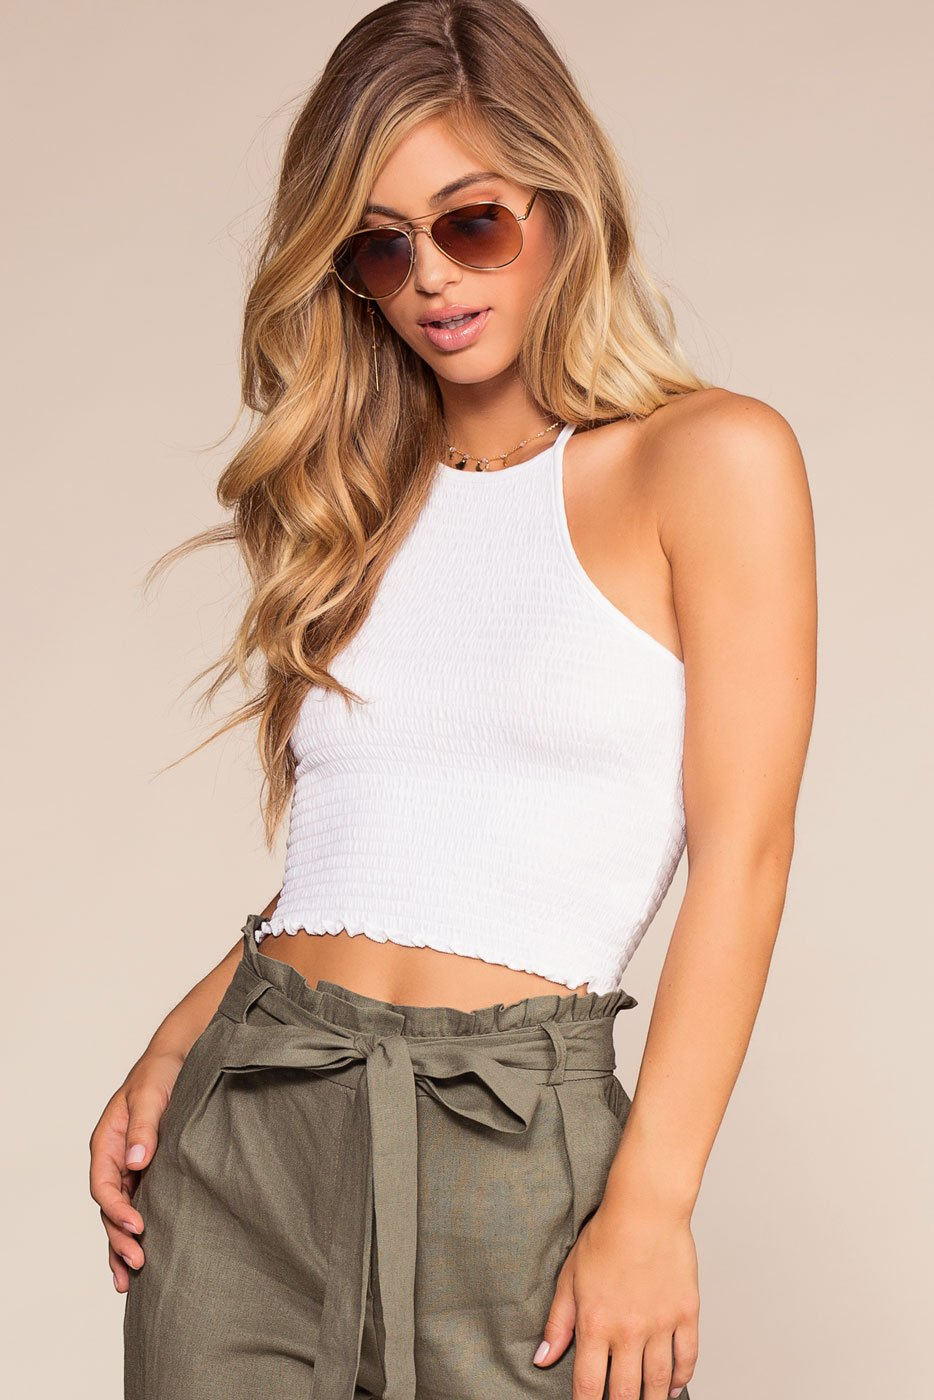 Tops - Lola Bay Halter Smocked Crop Top - White